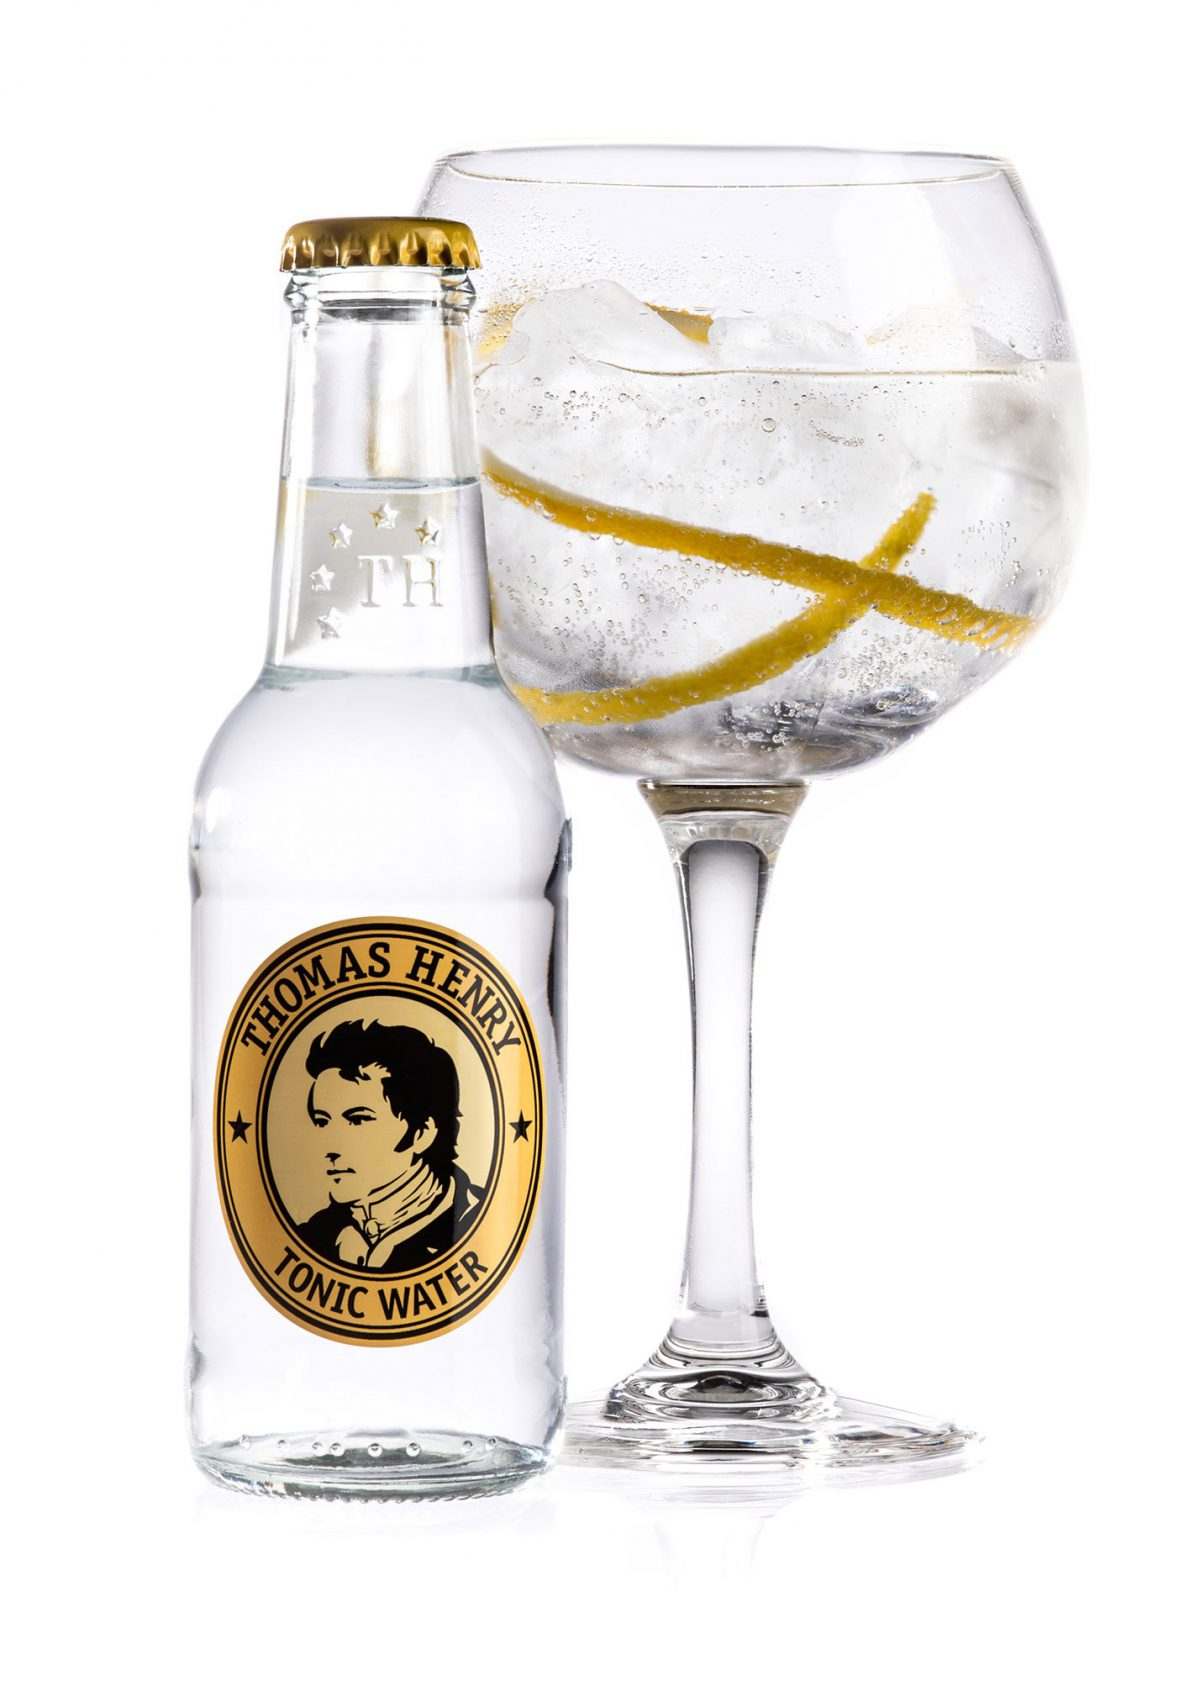 Thomas Henry Cocktail Gin & Tonic